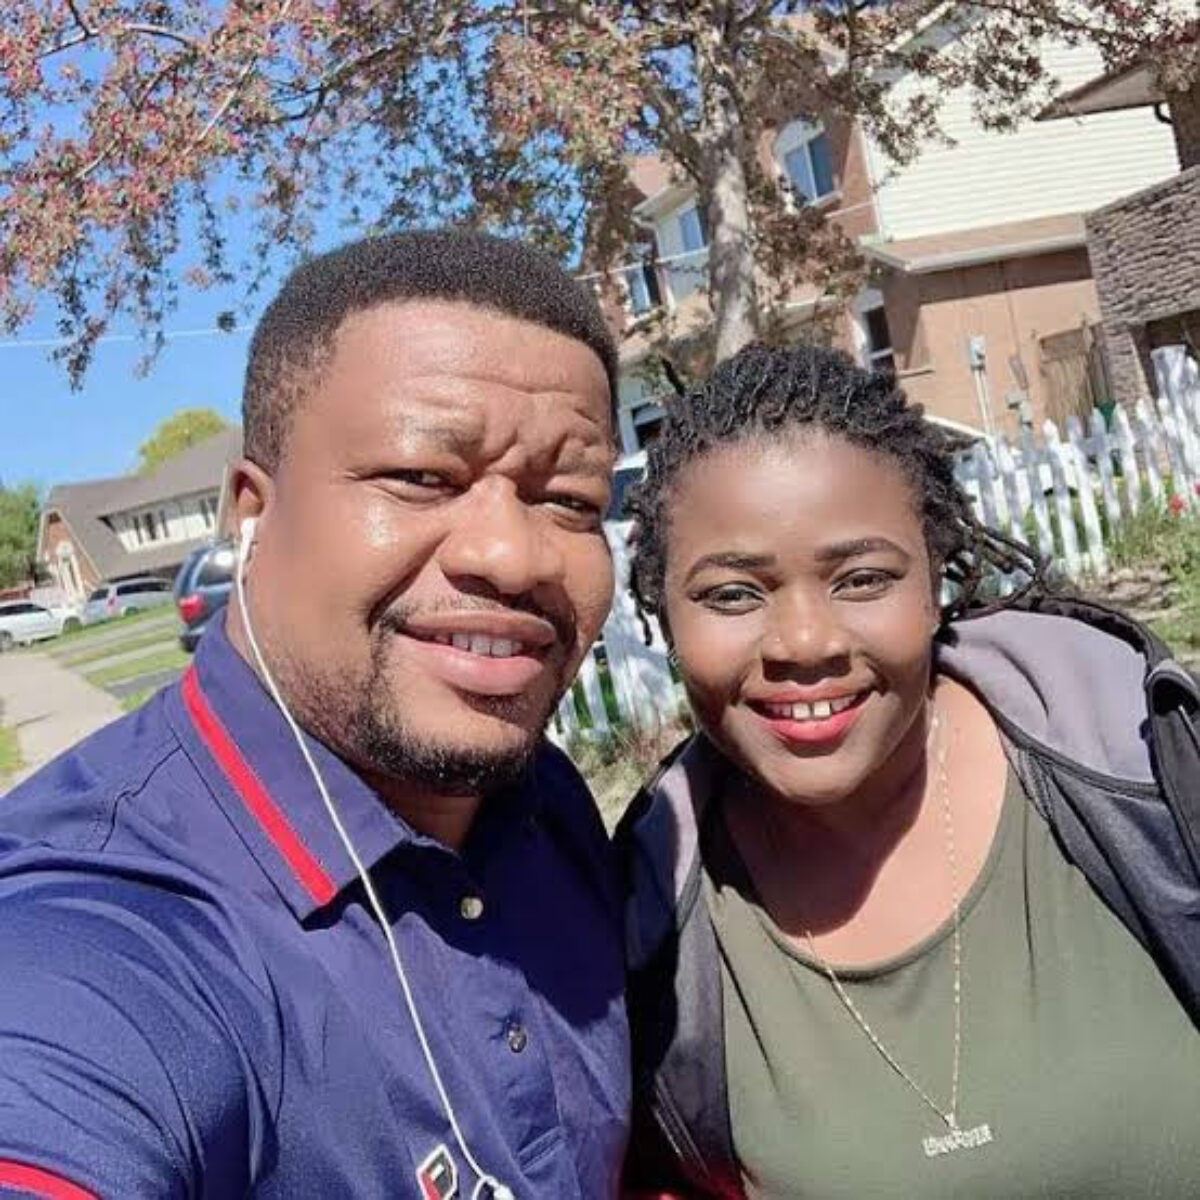 Browny Igboegwu Welcomes First Child With Wife After 10 Years of Marriage